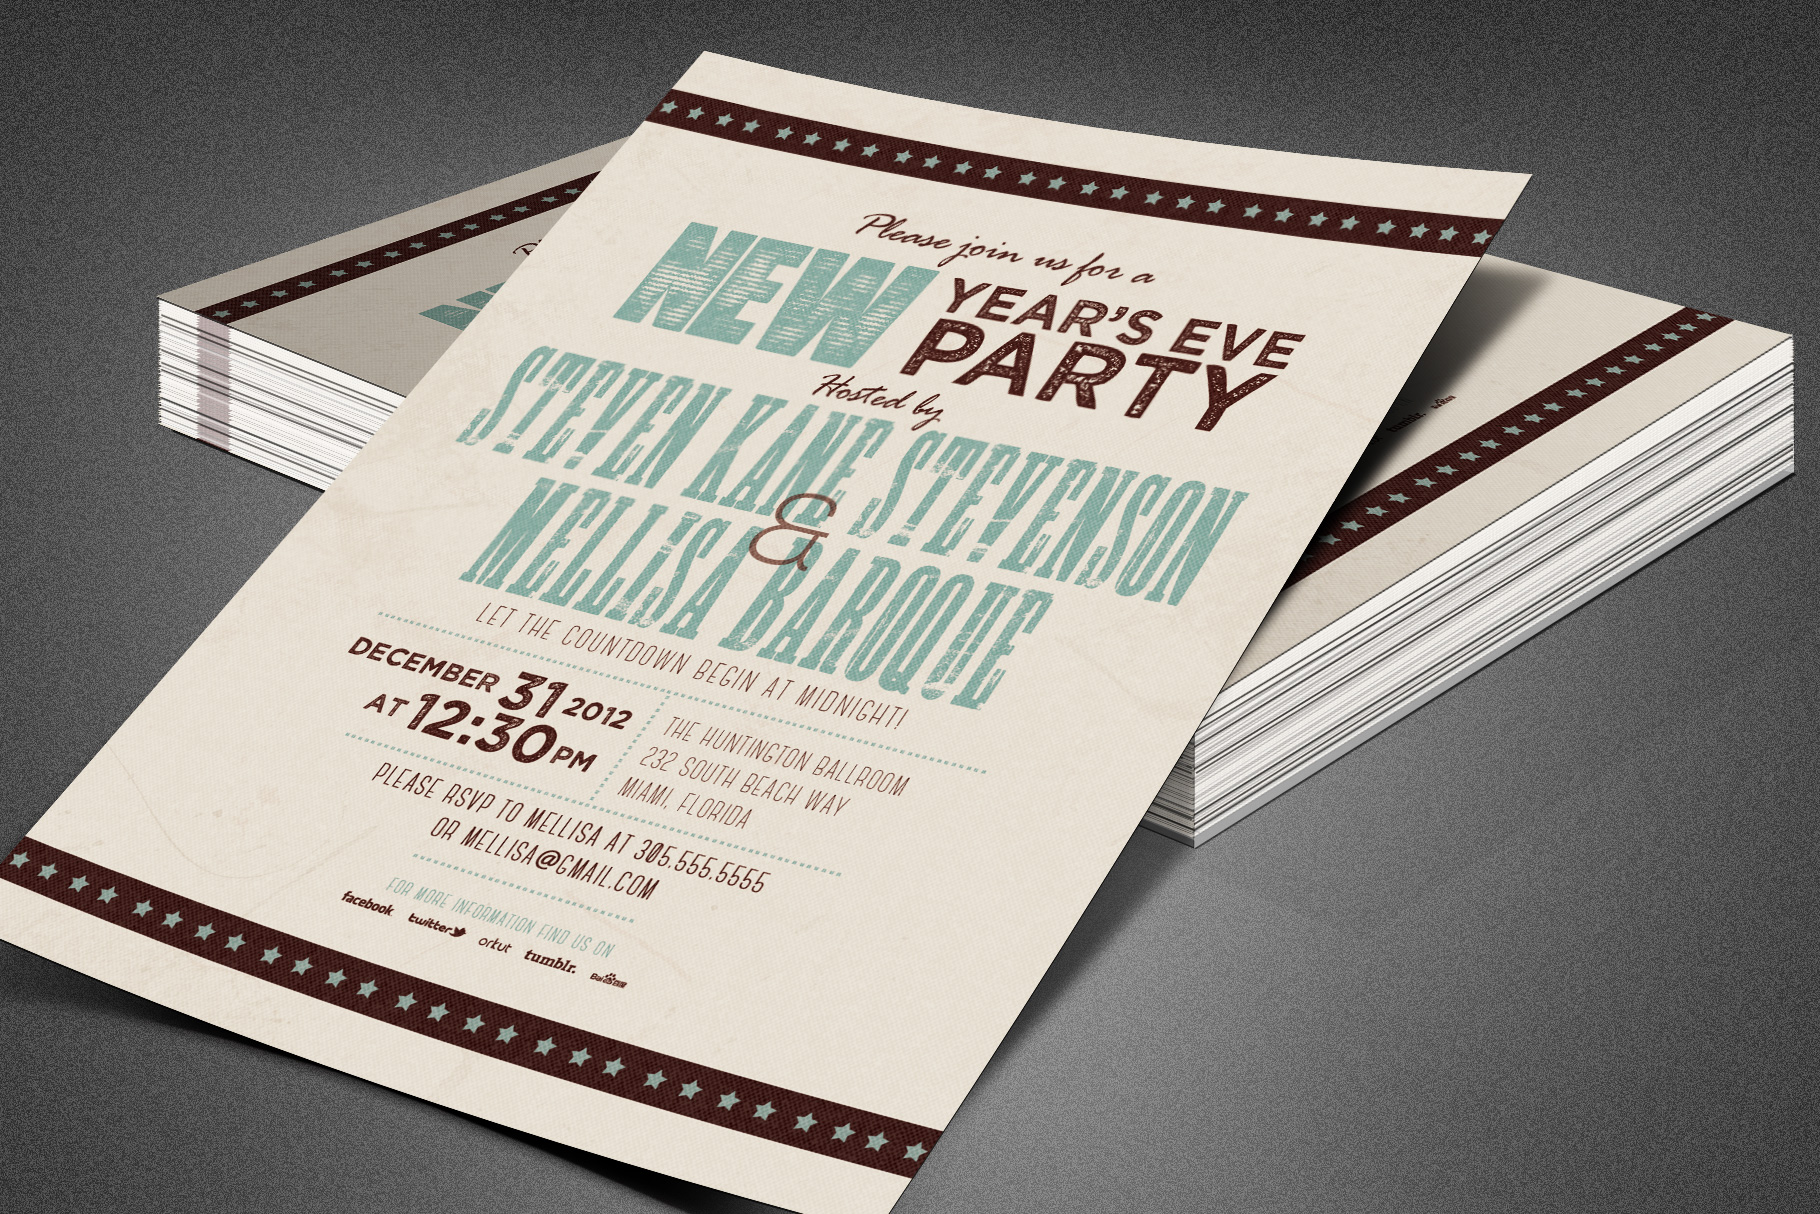 Retro New Year Party Invite Card Template example image 2